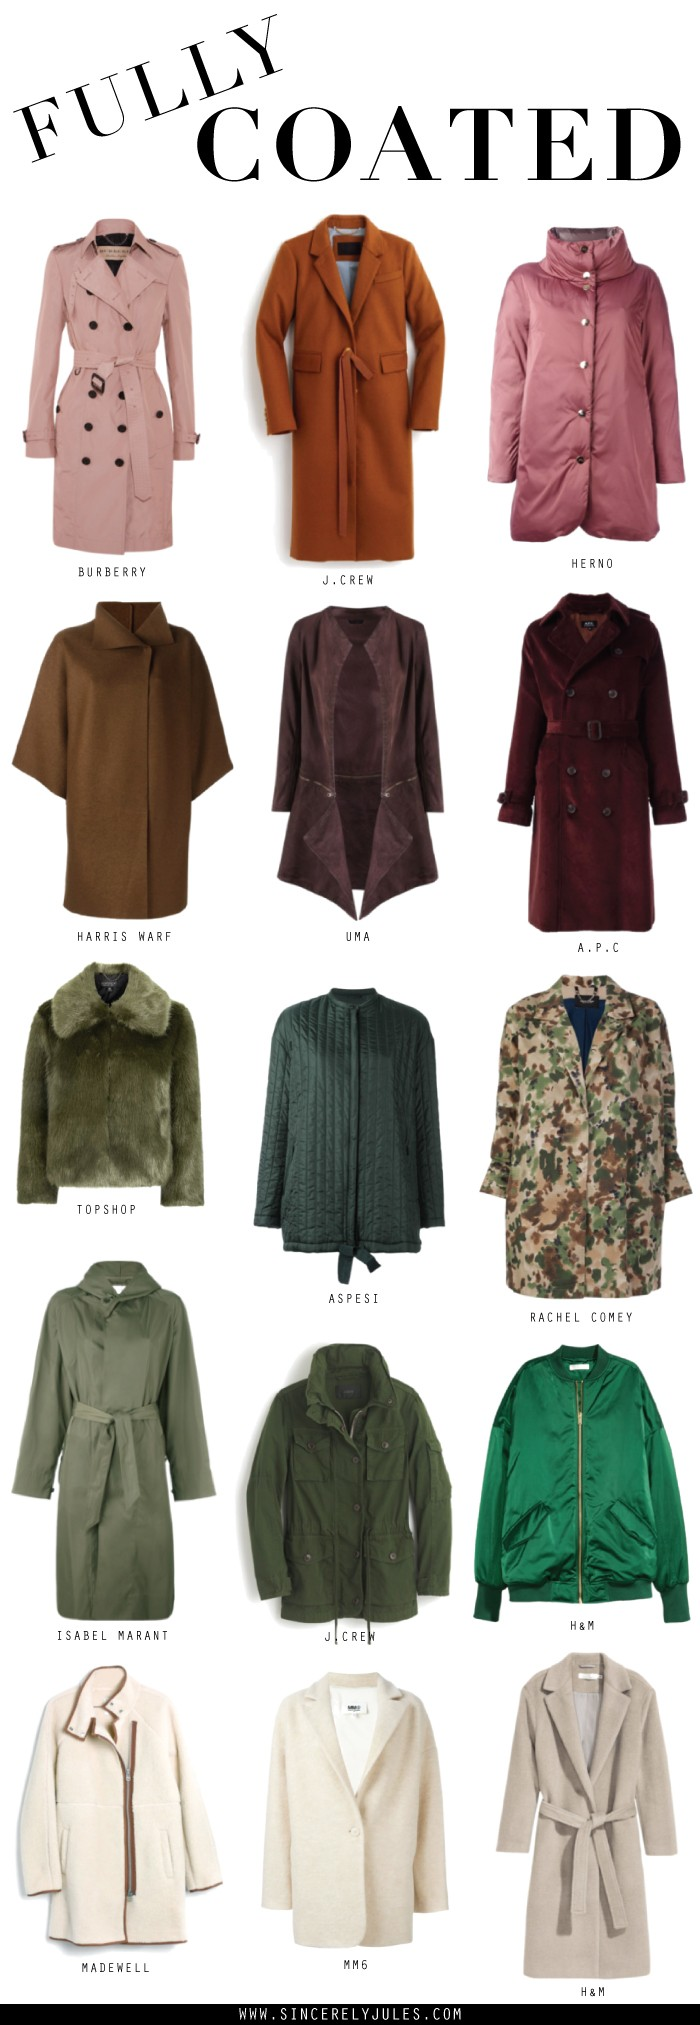 3324808cd63b ... imagine why a cozy bomber or a fully fur coat wouldn t do just the  same! Do you prefer neutral or pop color coats  I can t decide what I love  more!